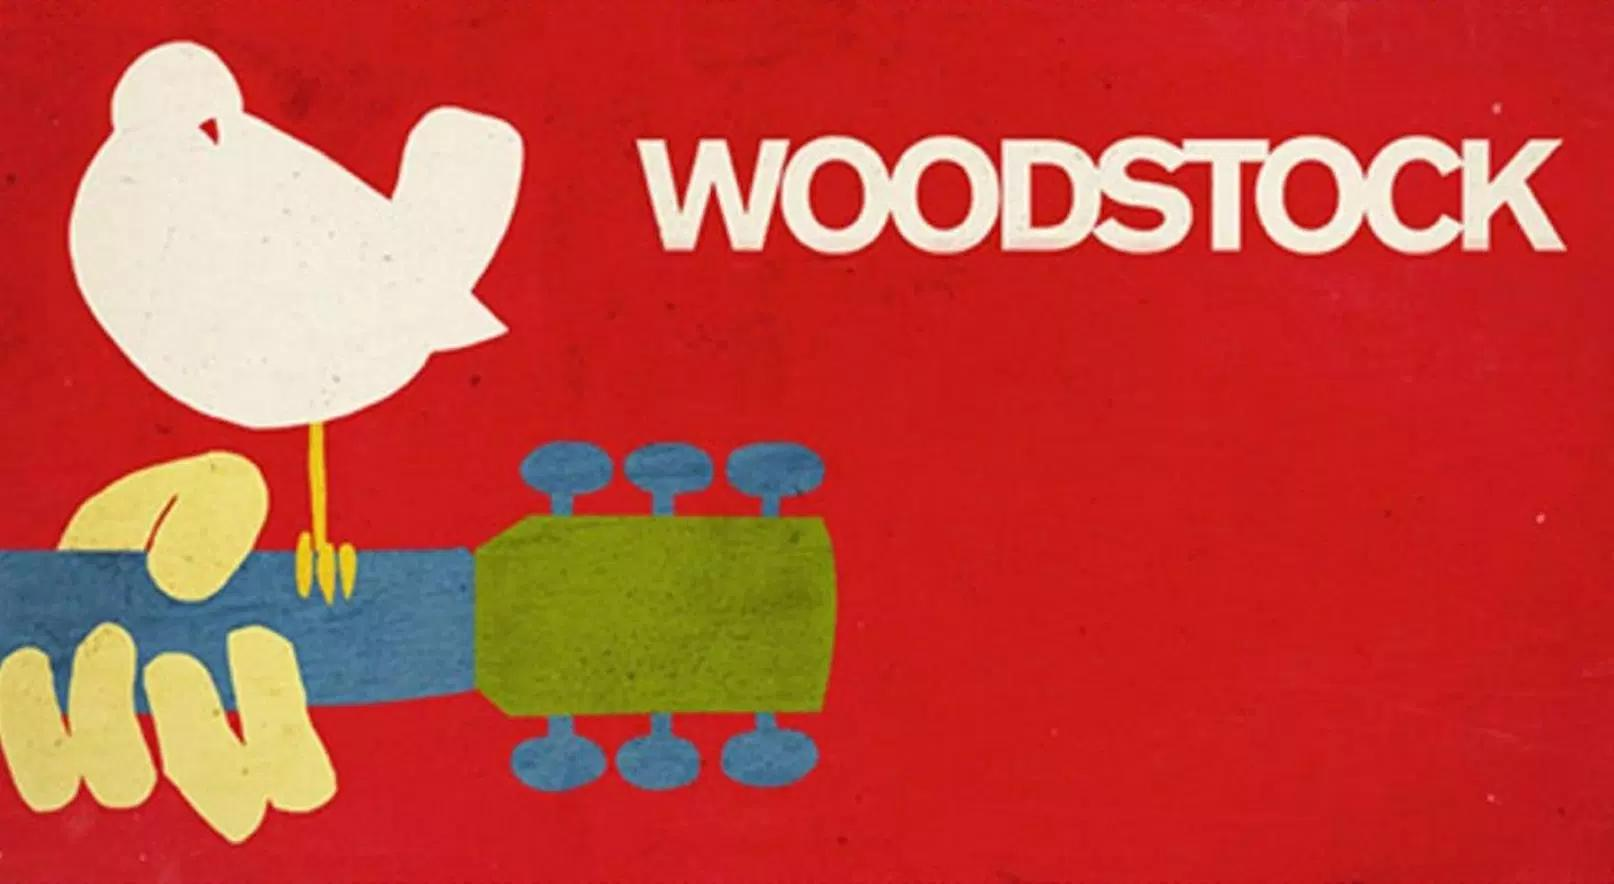 Woodstock's 50th anniversary festival will include The Killers, Chance the Rapper, Imagine Dragons, Dead and Company, and more: